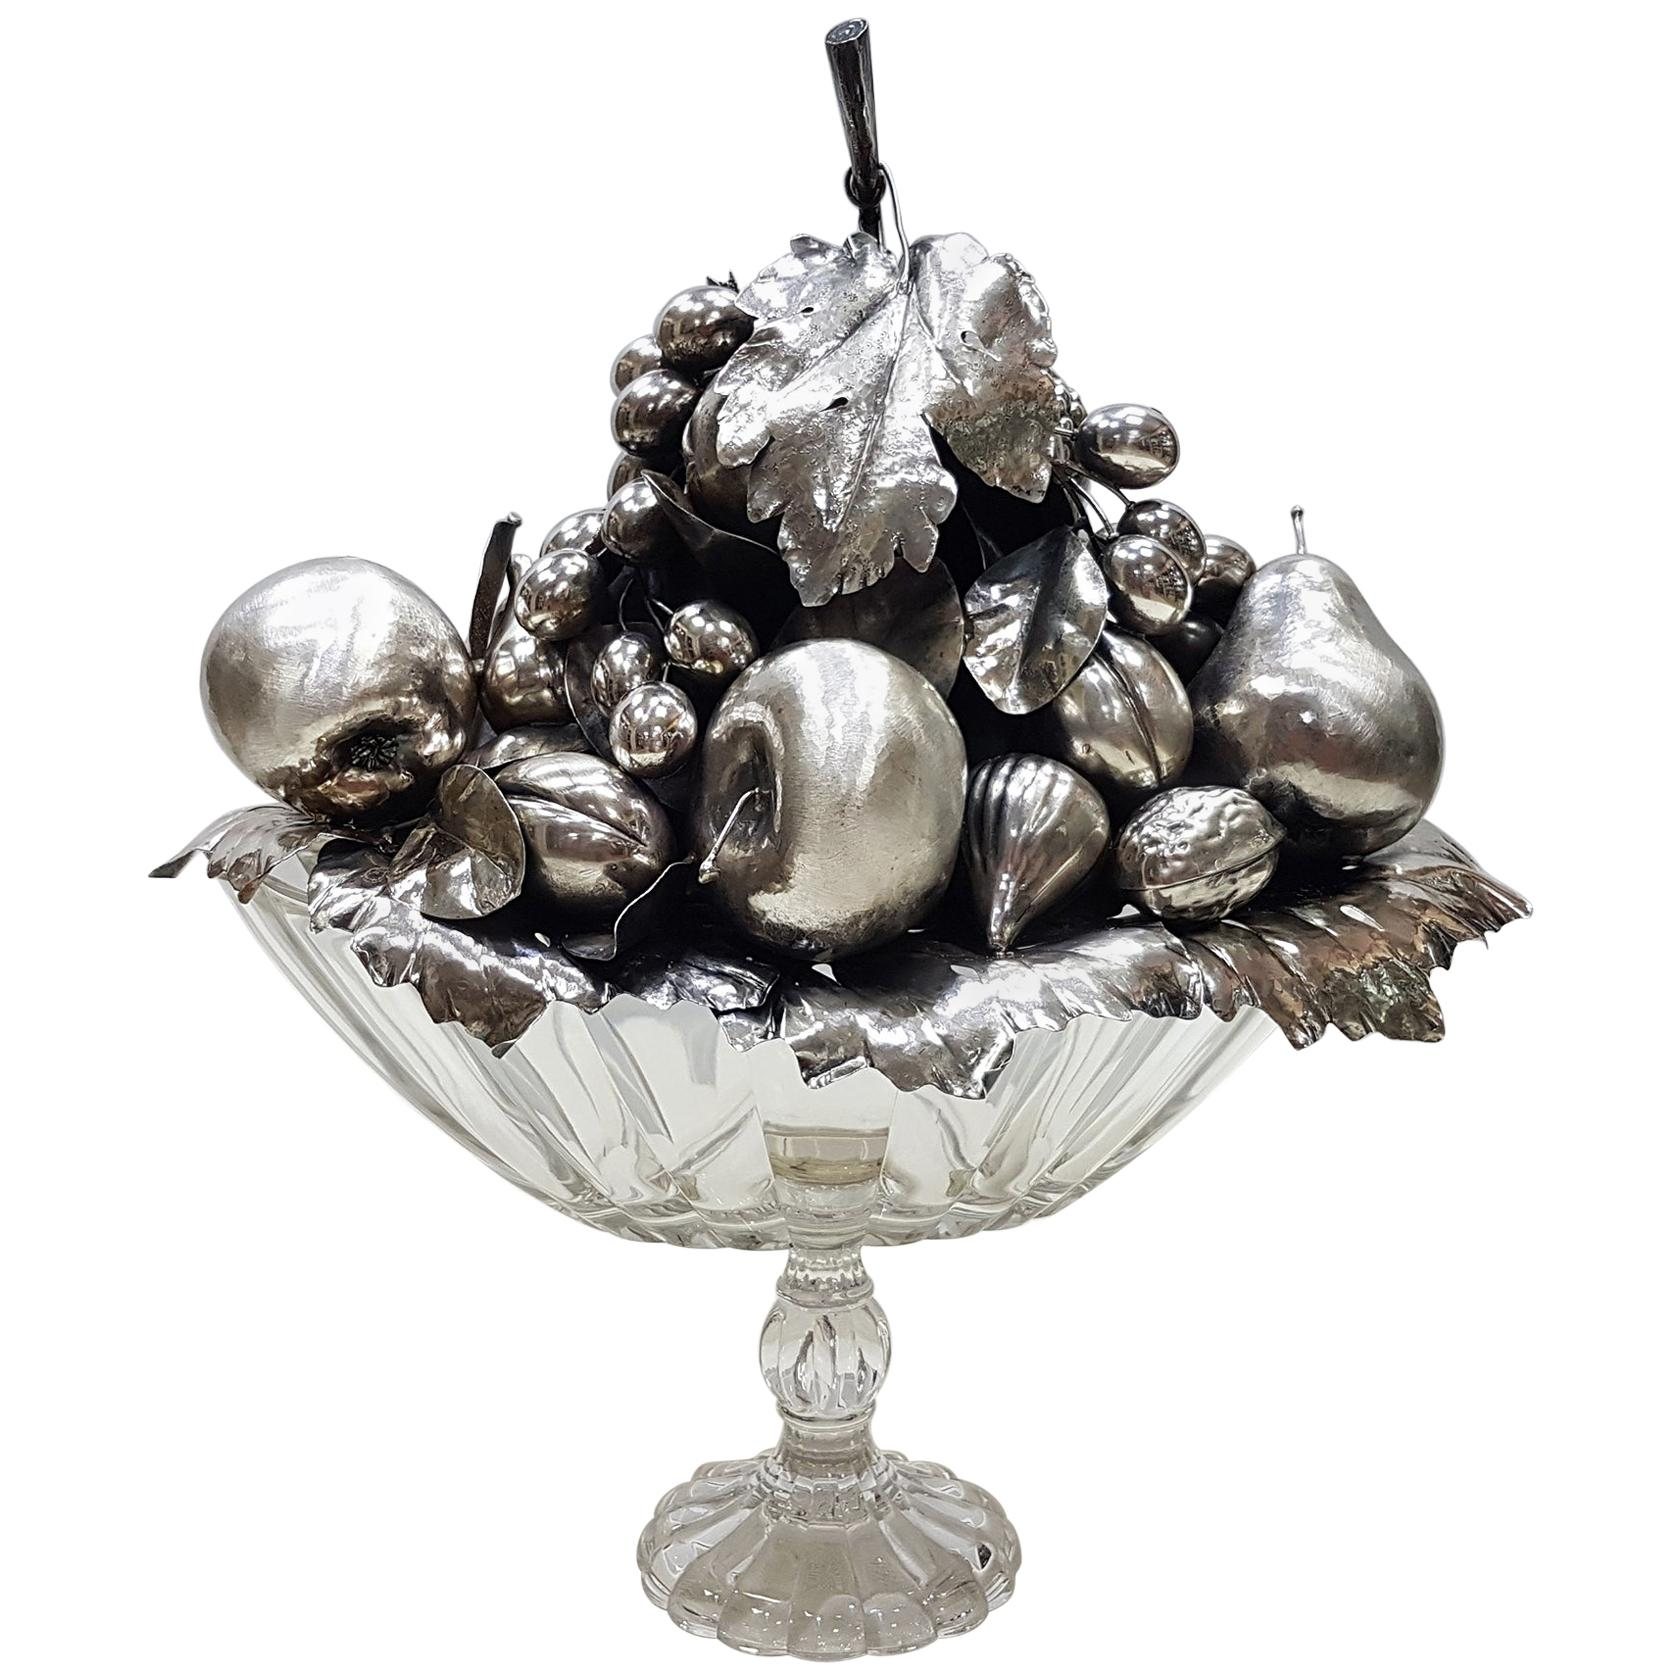 20th Century Sterling Italian Sterling Silver Centrepiece on Cristal Base